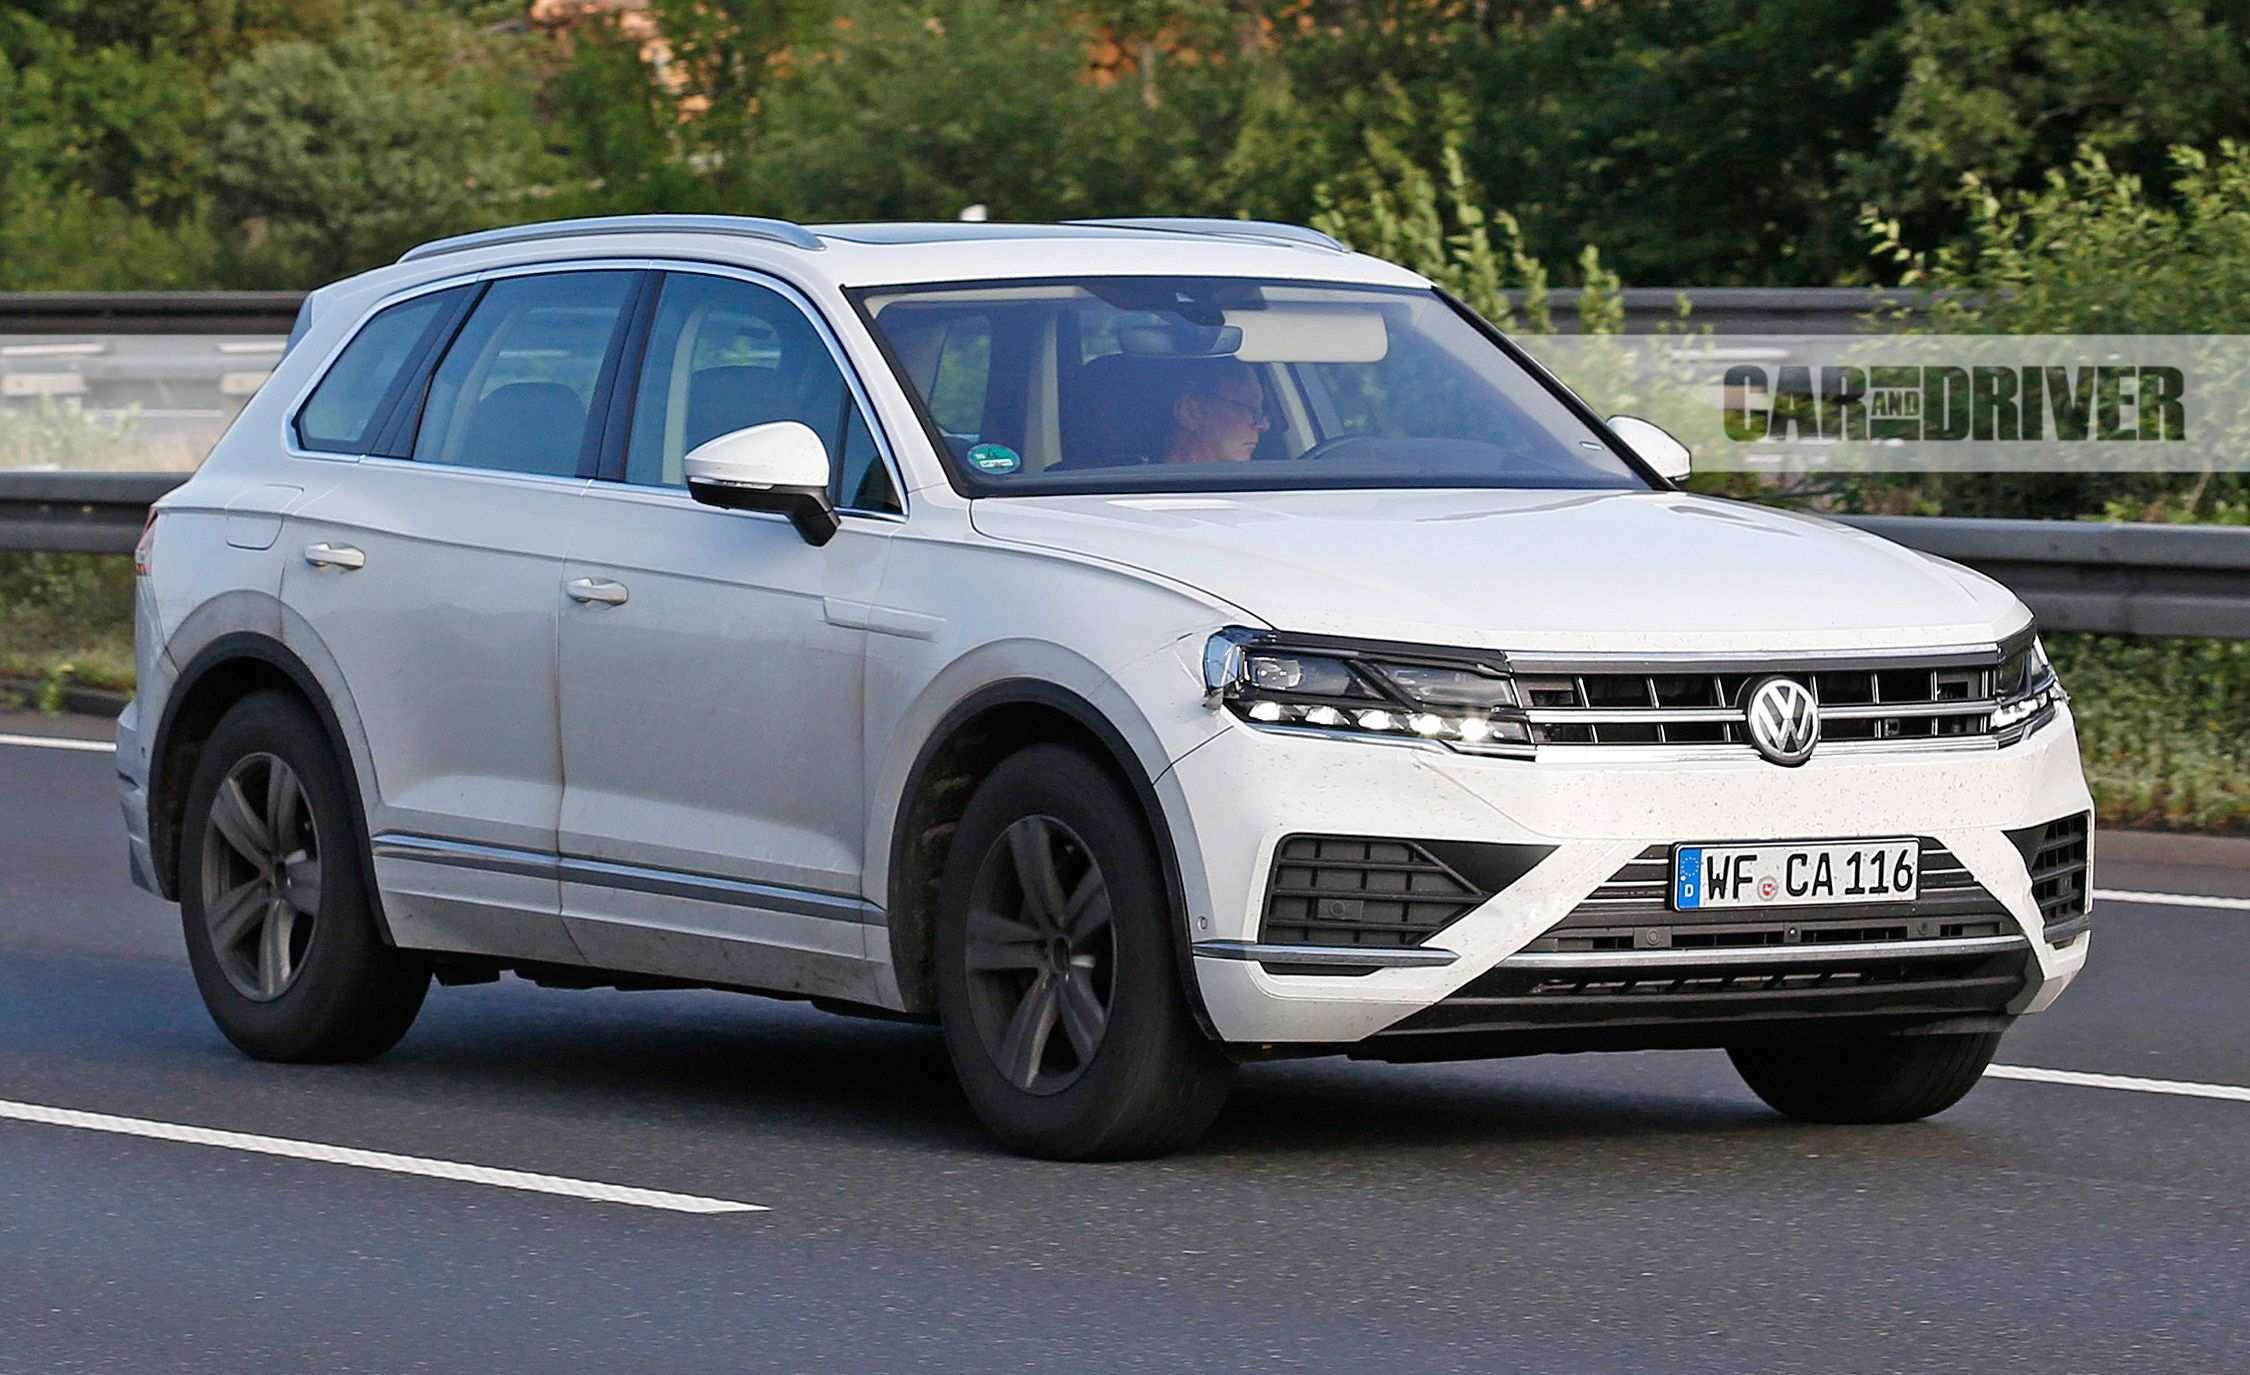 12 All New 2020 Vw Touareg Tdi Price and Review with 2020 Vw Touareg Tdi